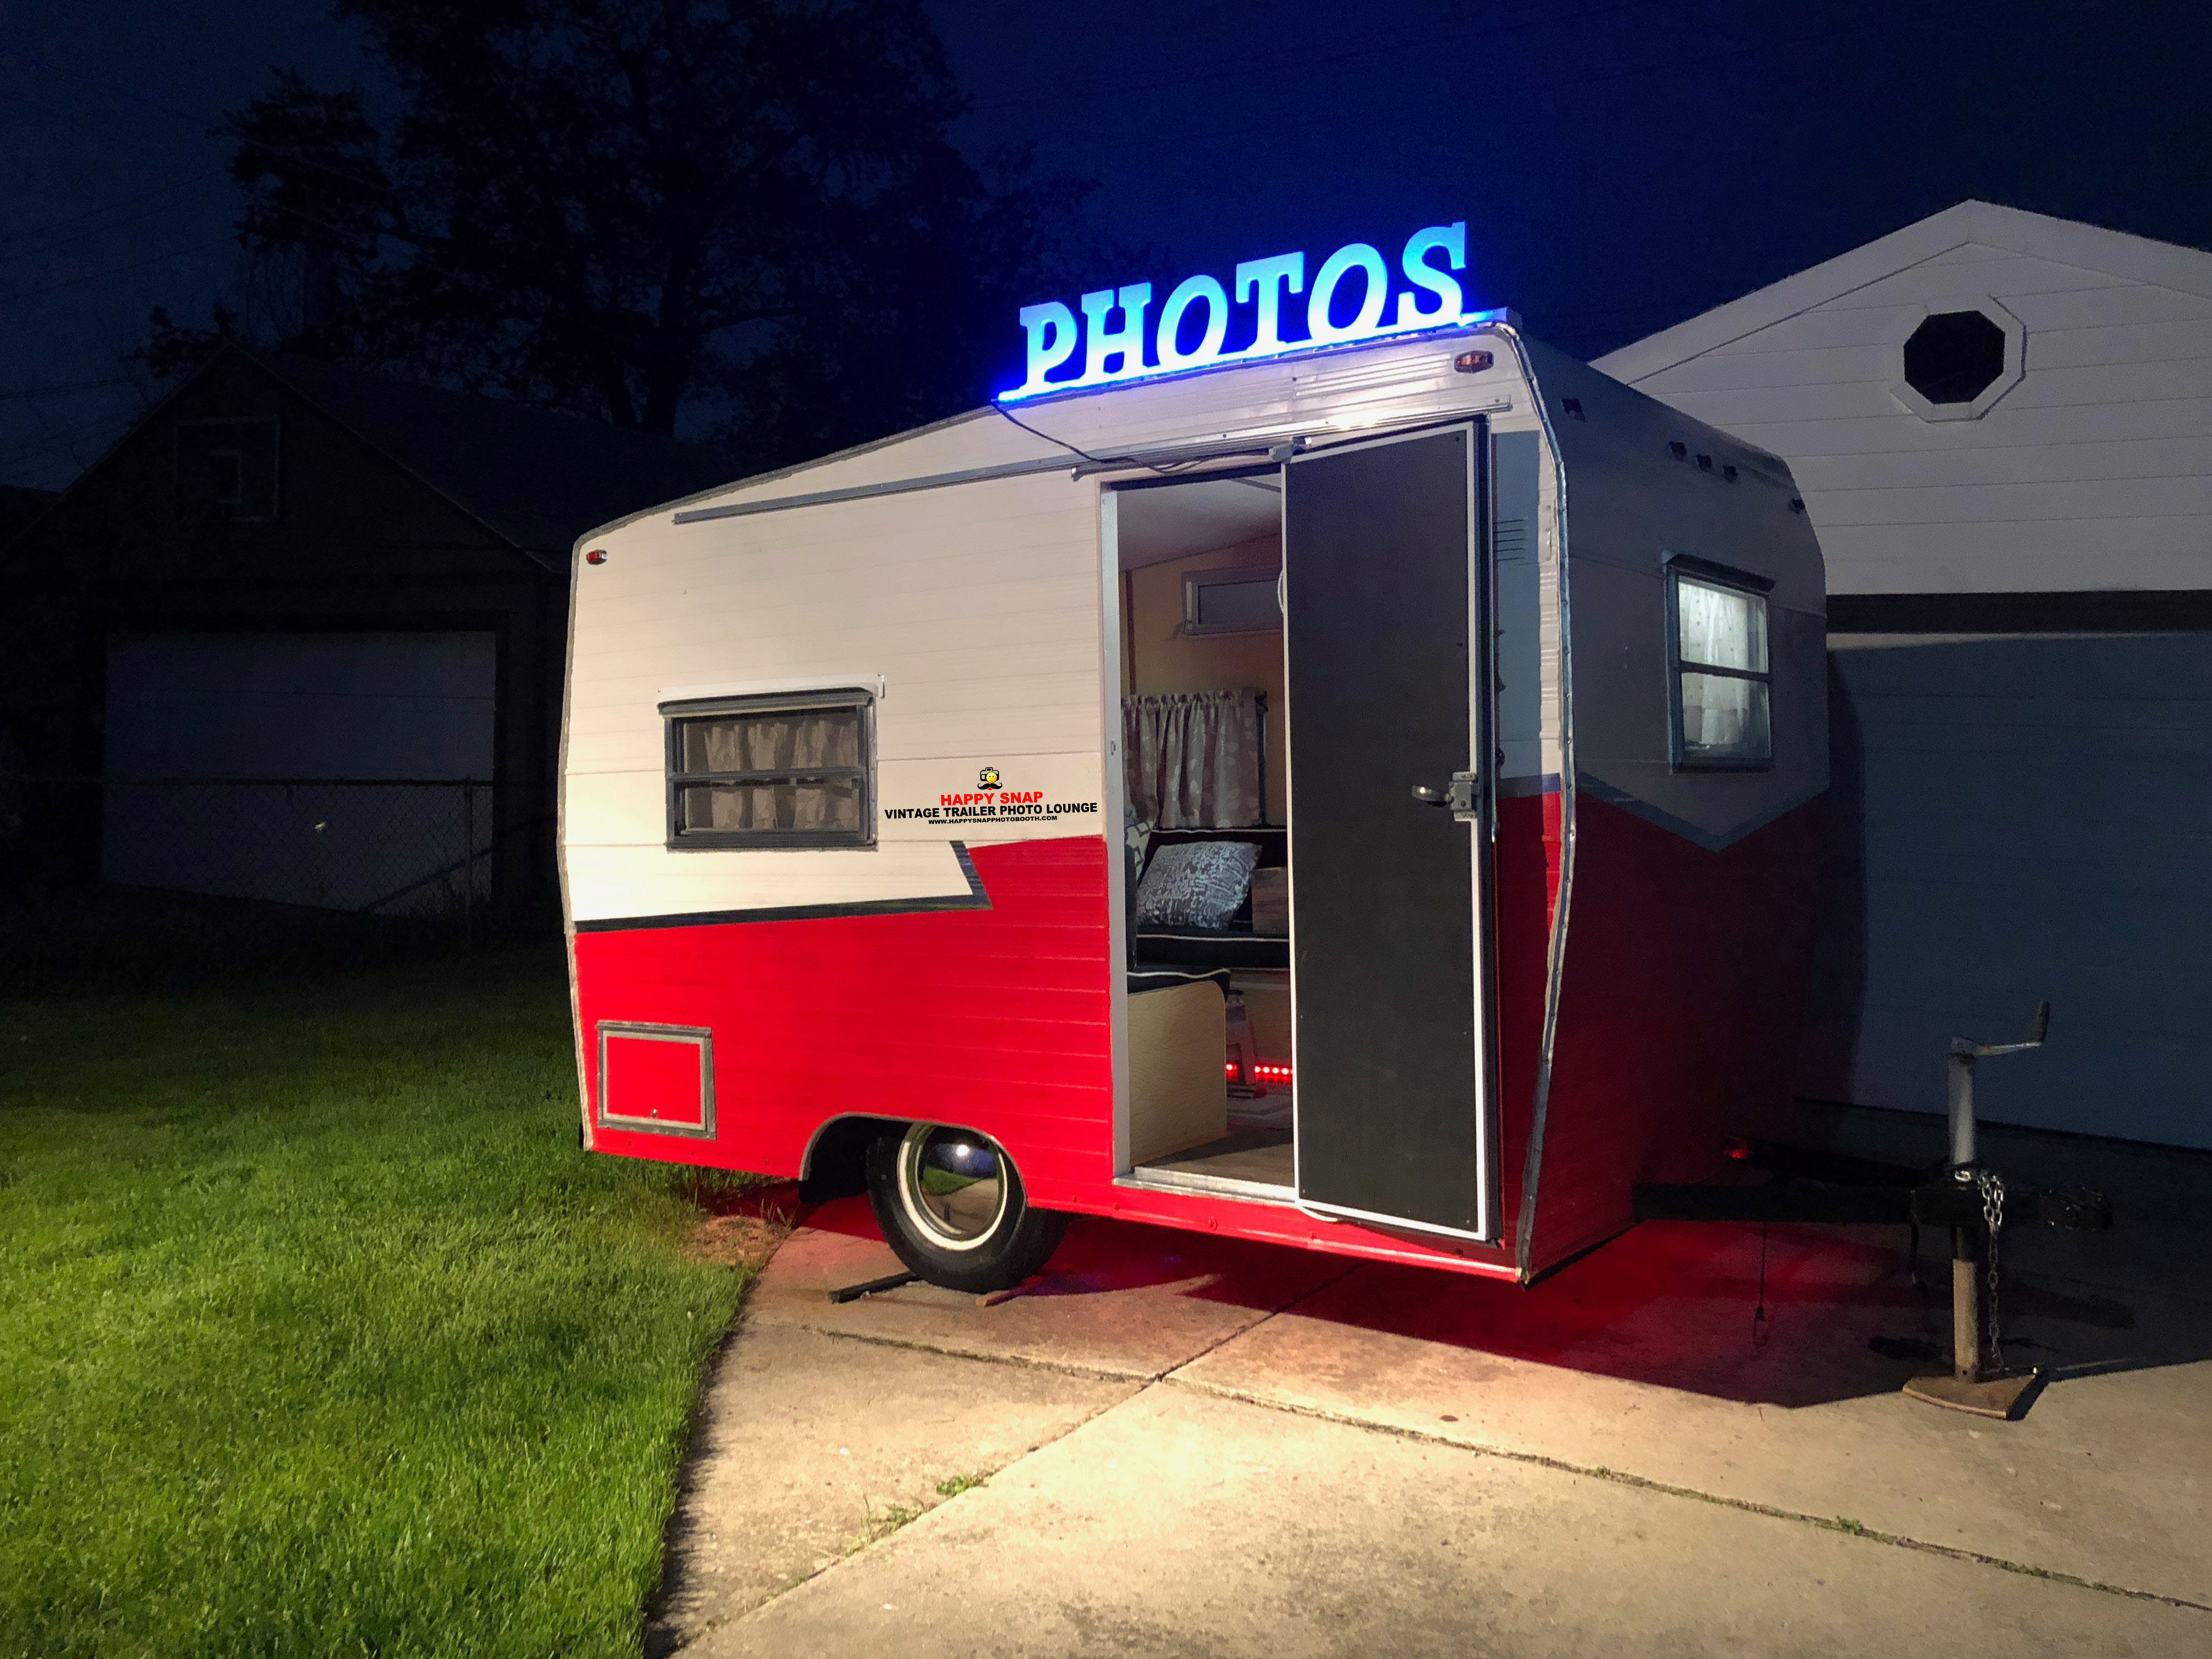 Vintage Trailer Photo Lounge | Happy Snap Photo Booth LLC